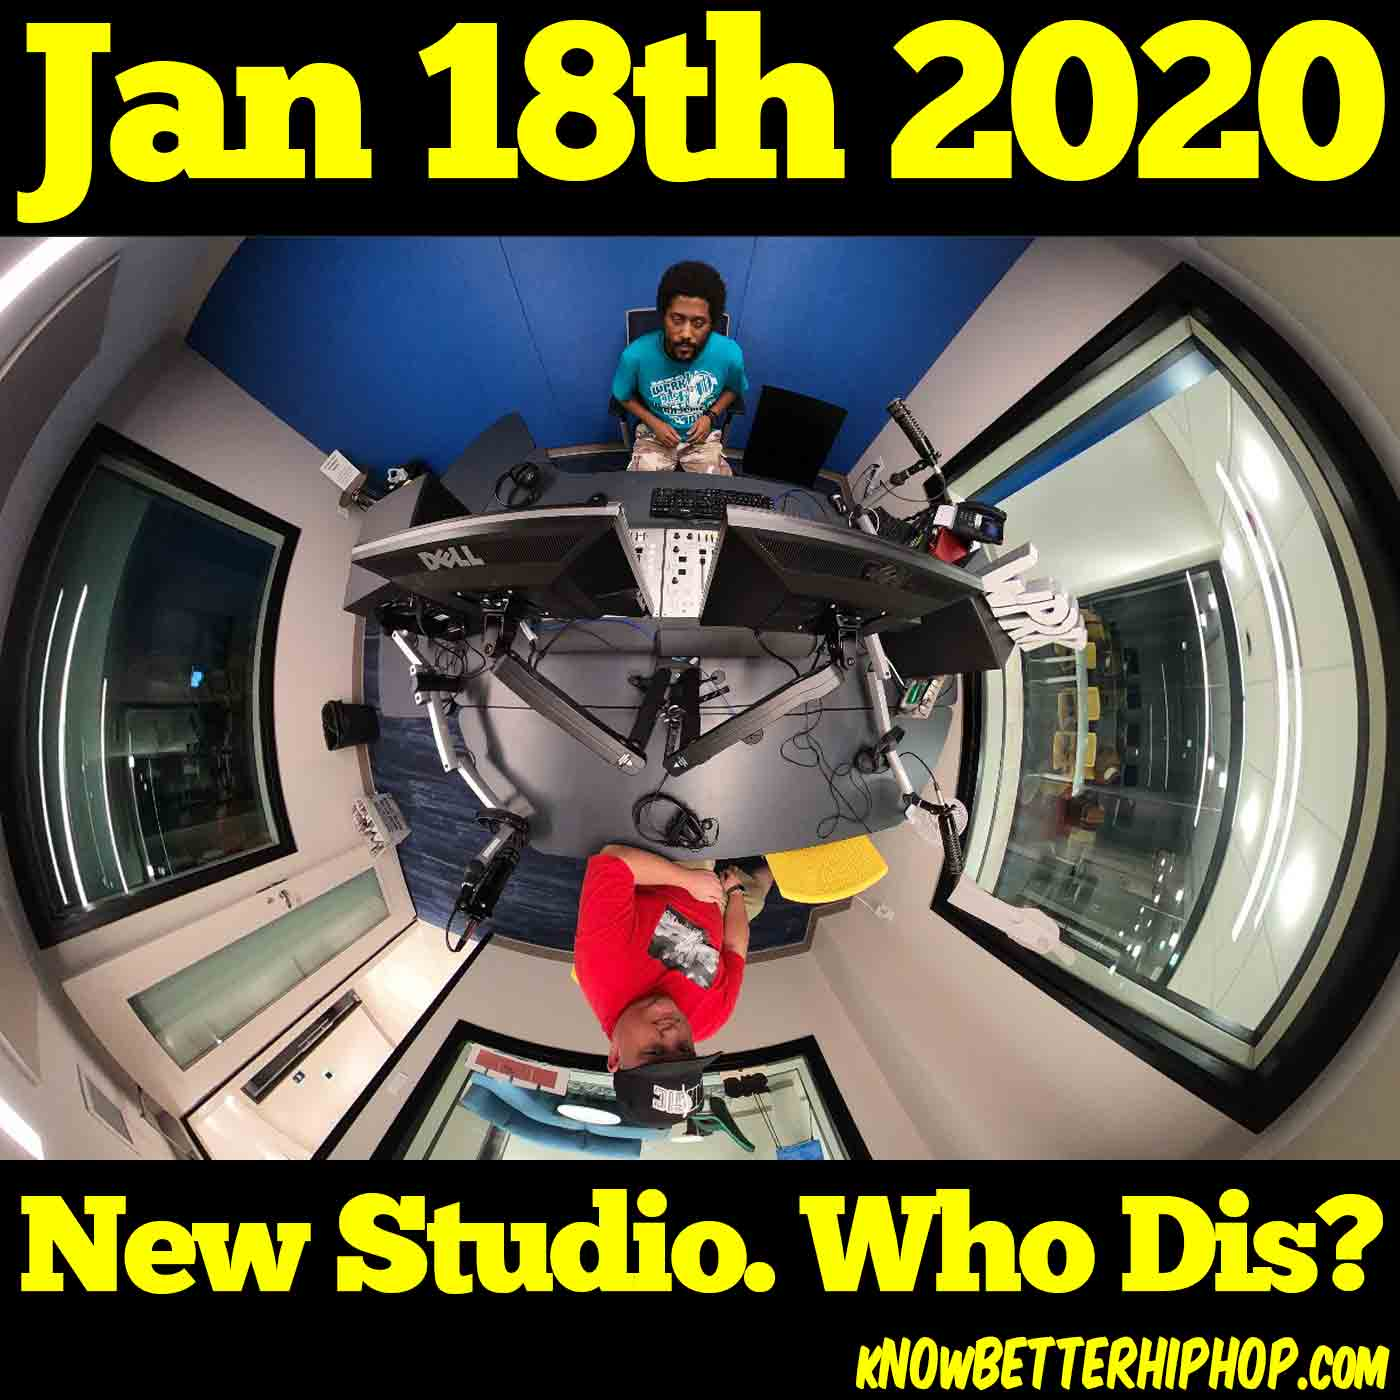 1-18-20 OUR show New Studio. Who Dis?